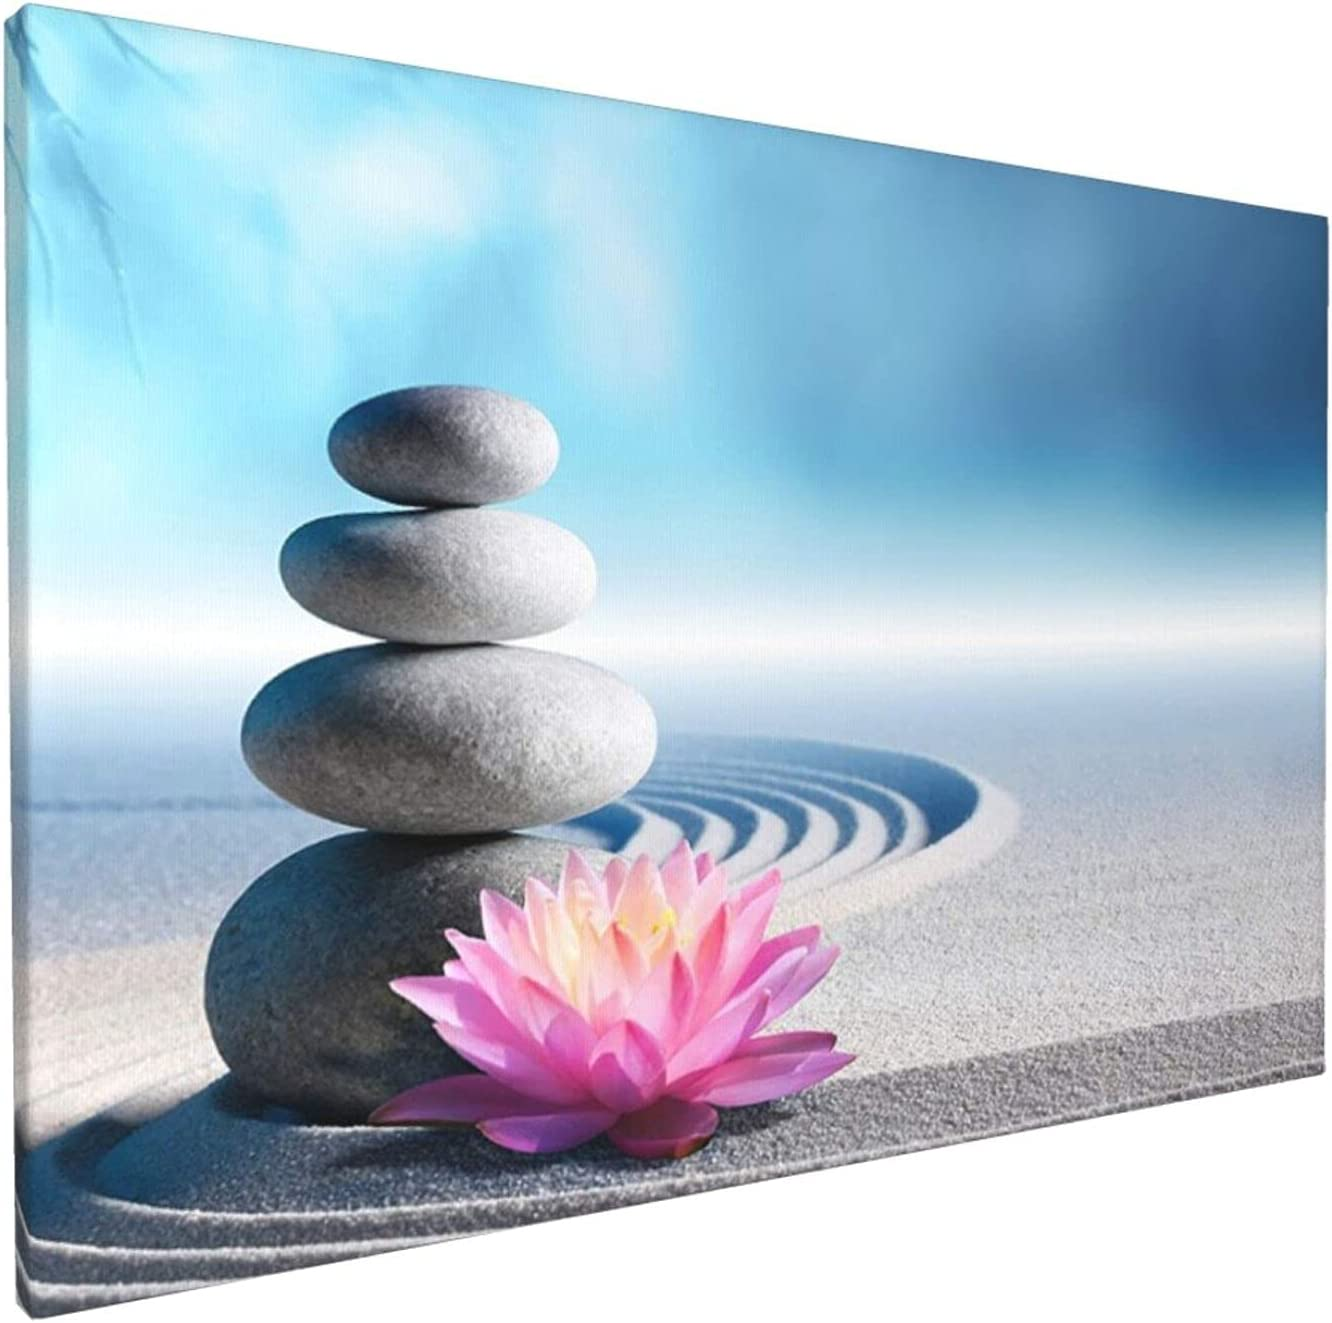 Relaxing River Rocks In Zen Garden Canvas Wall Art For Living Room Bedroom Decoration Wall Painting, Home Decoration Kitchen Posters Artwork,Inspirational Wall Art